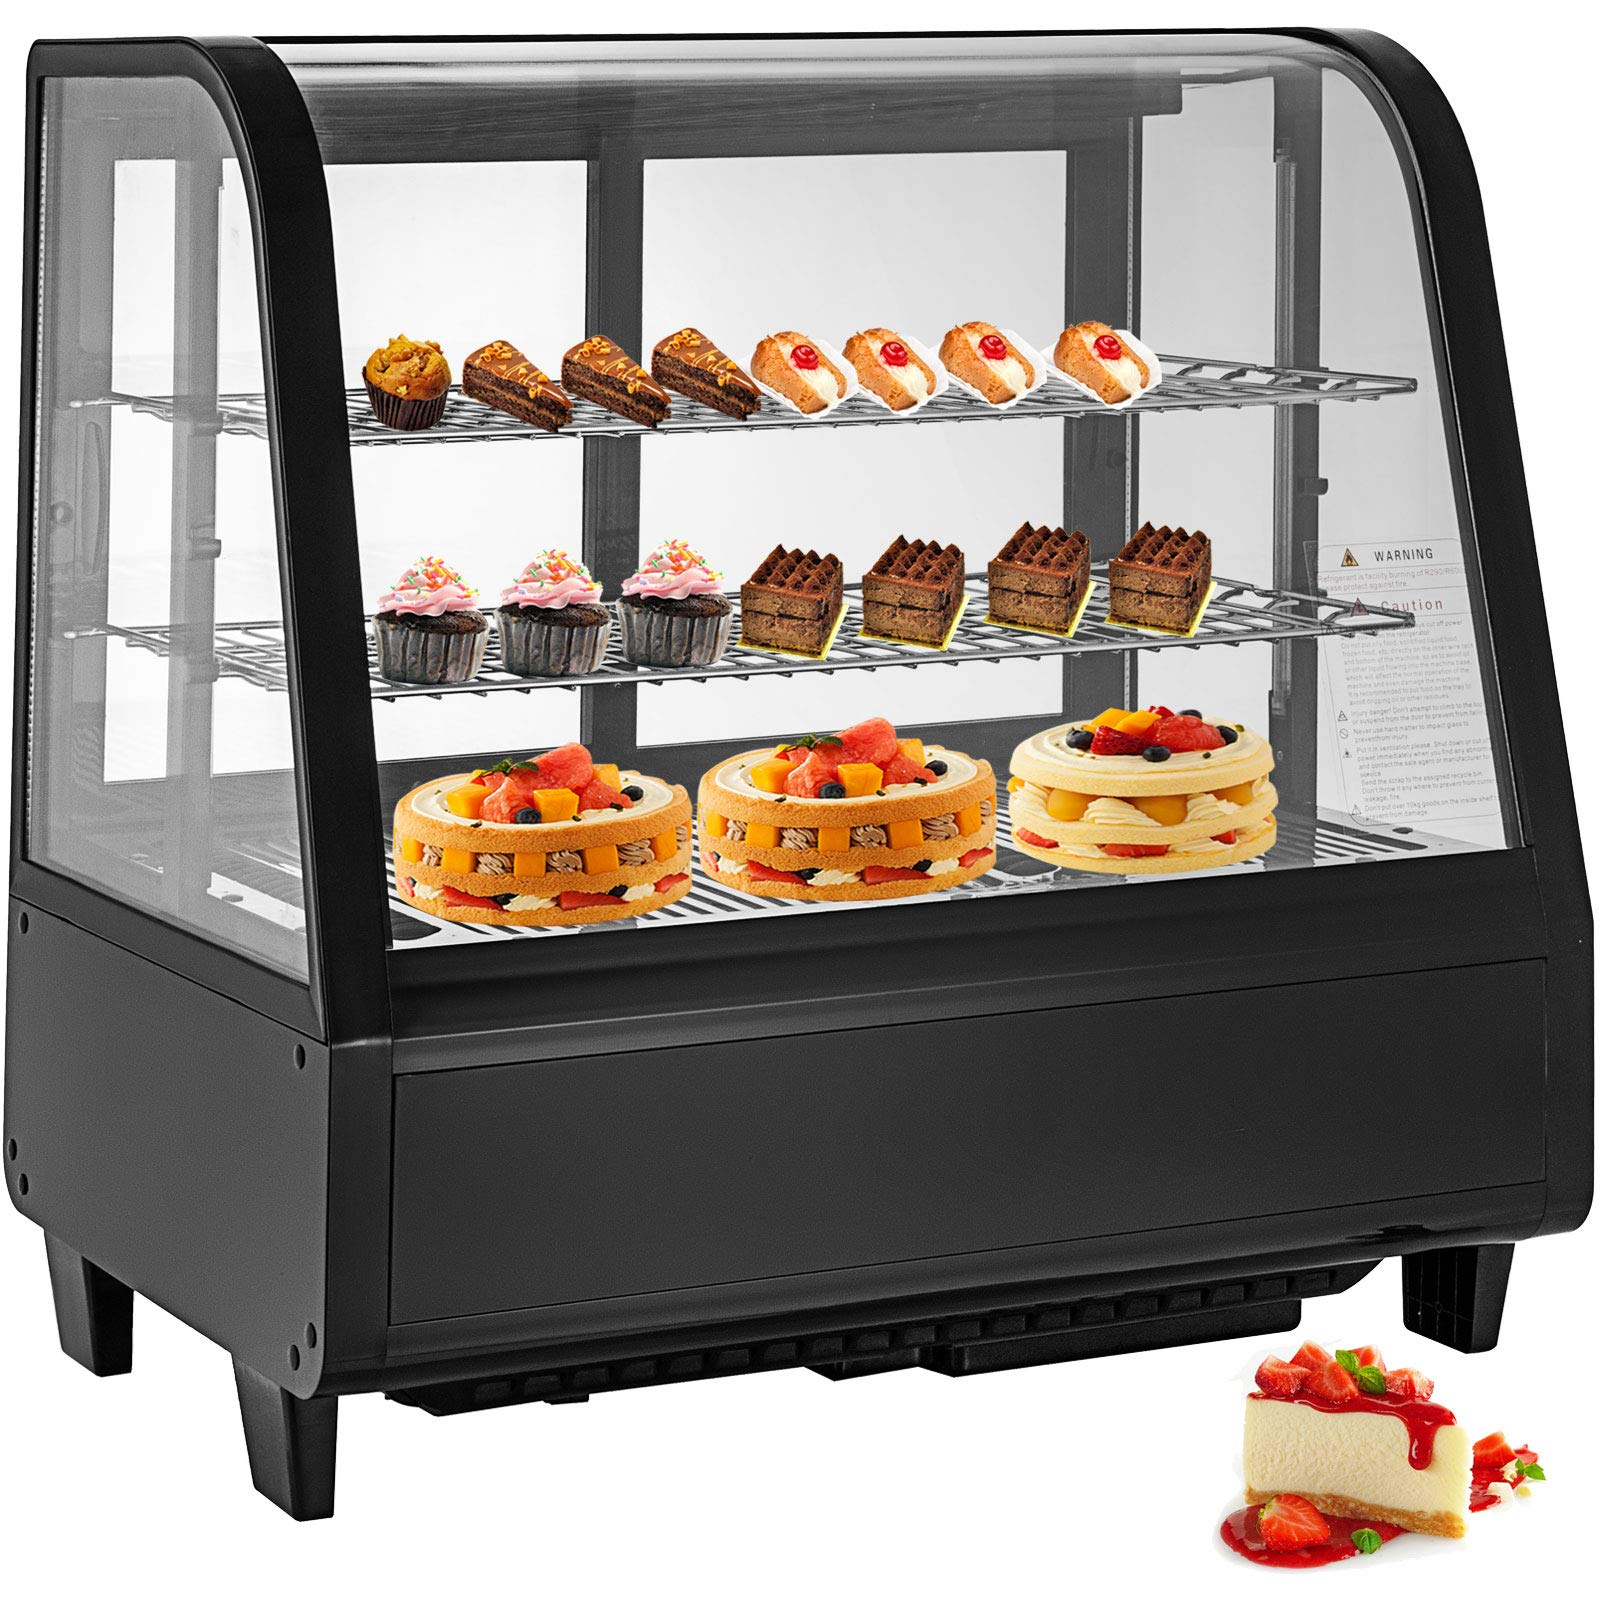 VBENLEM 3-1/2 cu ft Commercial Countertop Refrigerator 100L Bakery Dairy Display Cooler Case with Automatic Defrost LED Lighting Suit for Cake Roaster Shop Cafe Use by VBENLEM